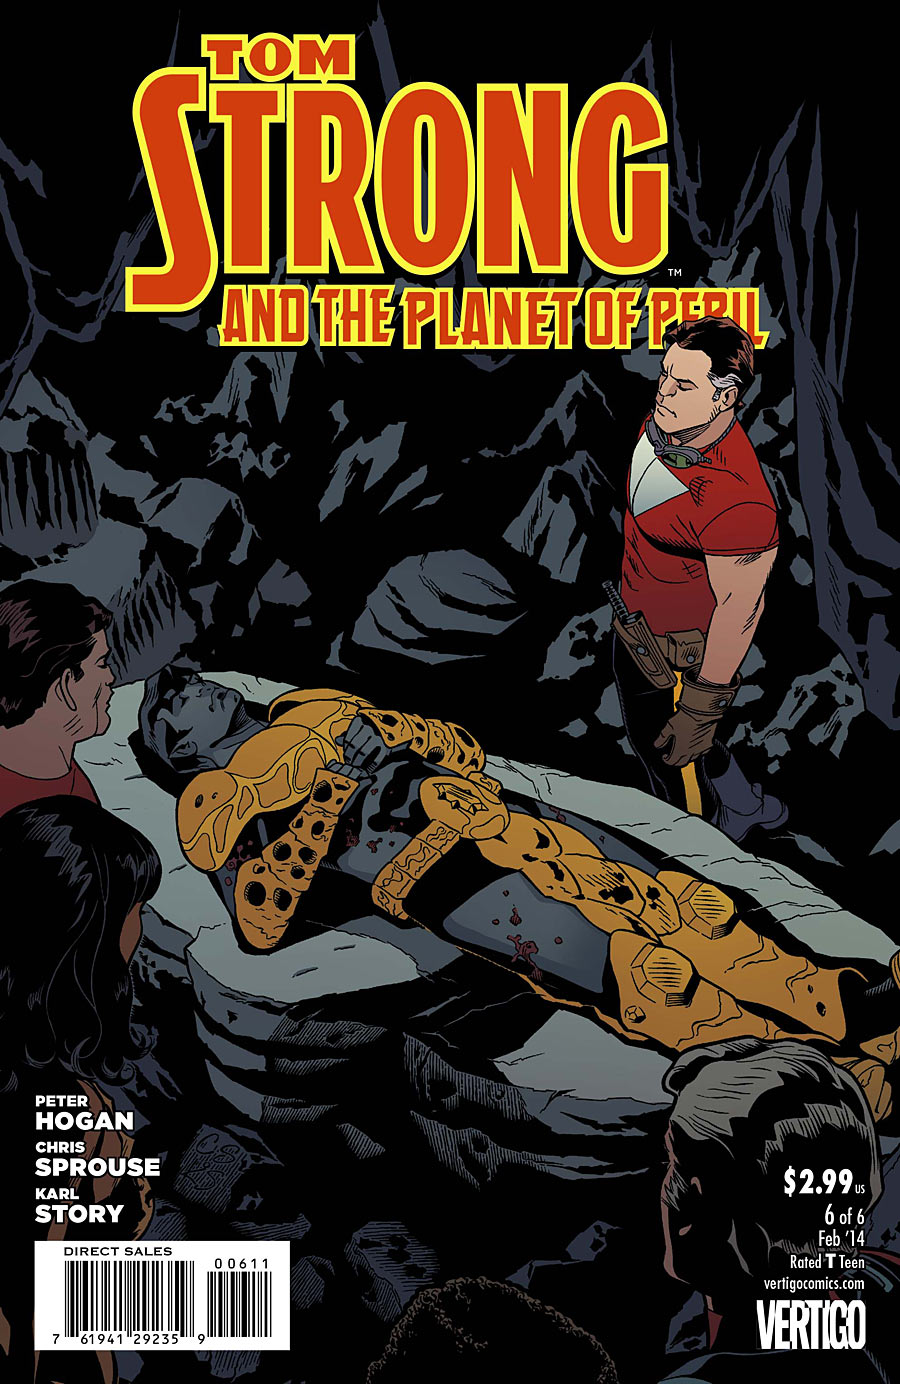 TOM STRONG AND THE PLANET OF PERIL #6 review